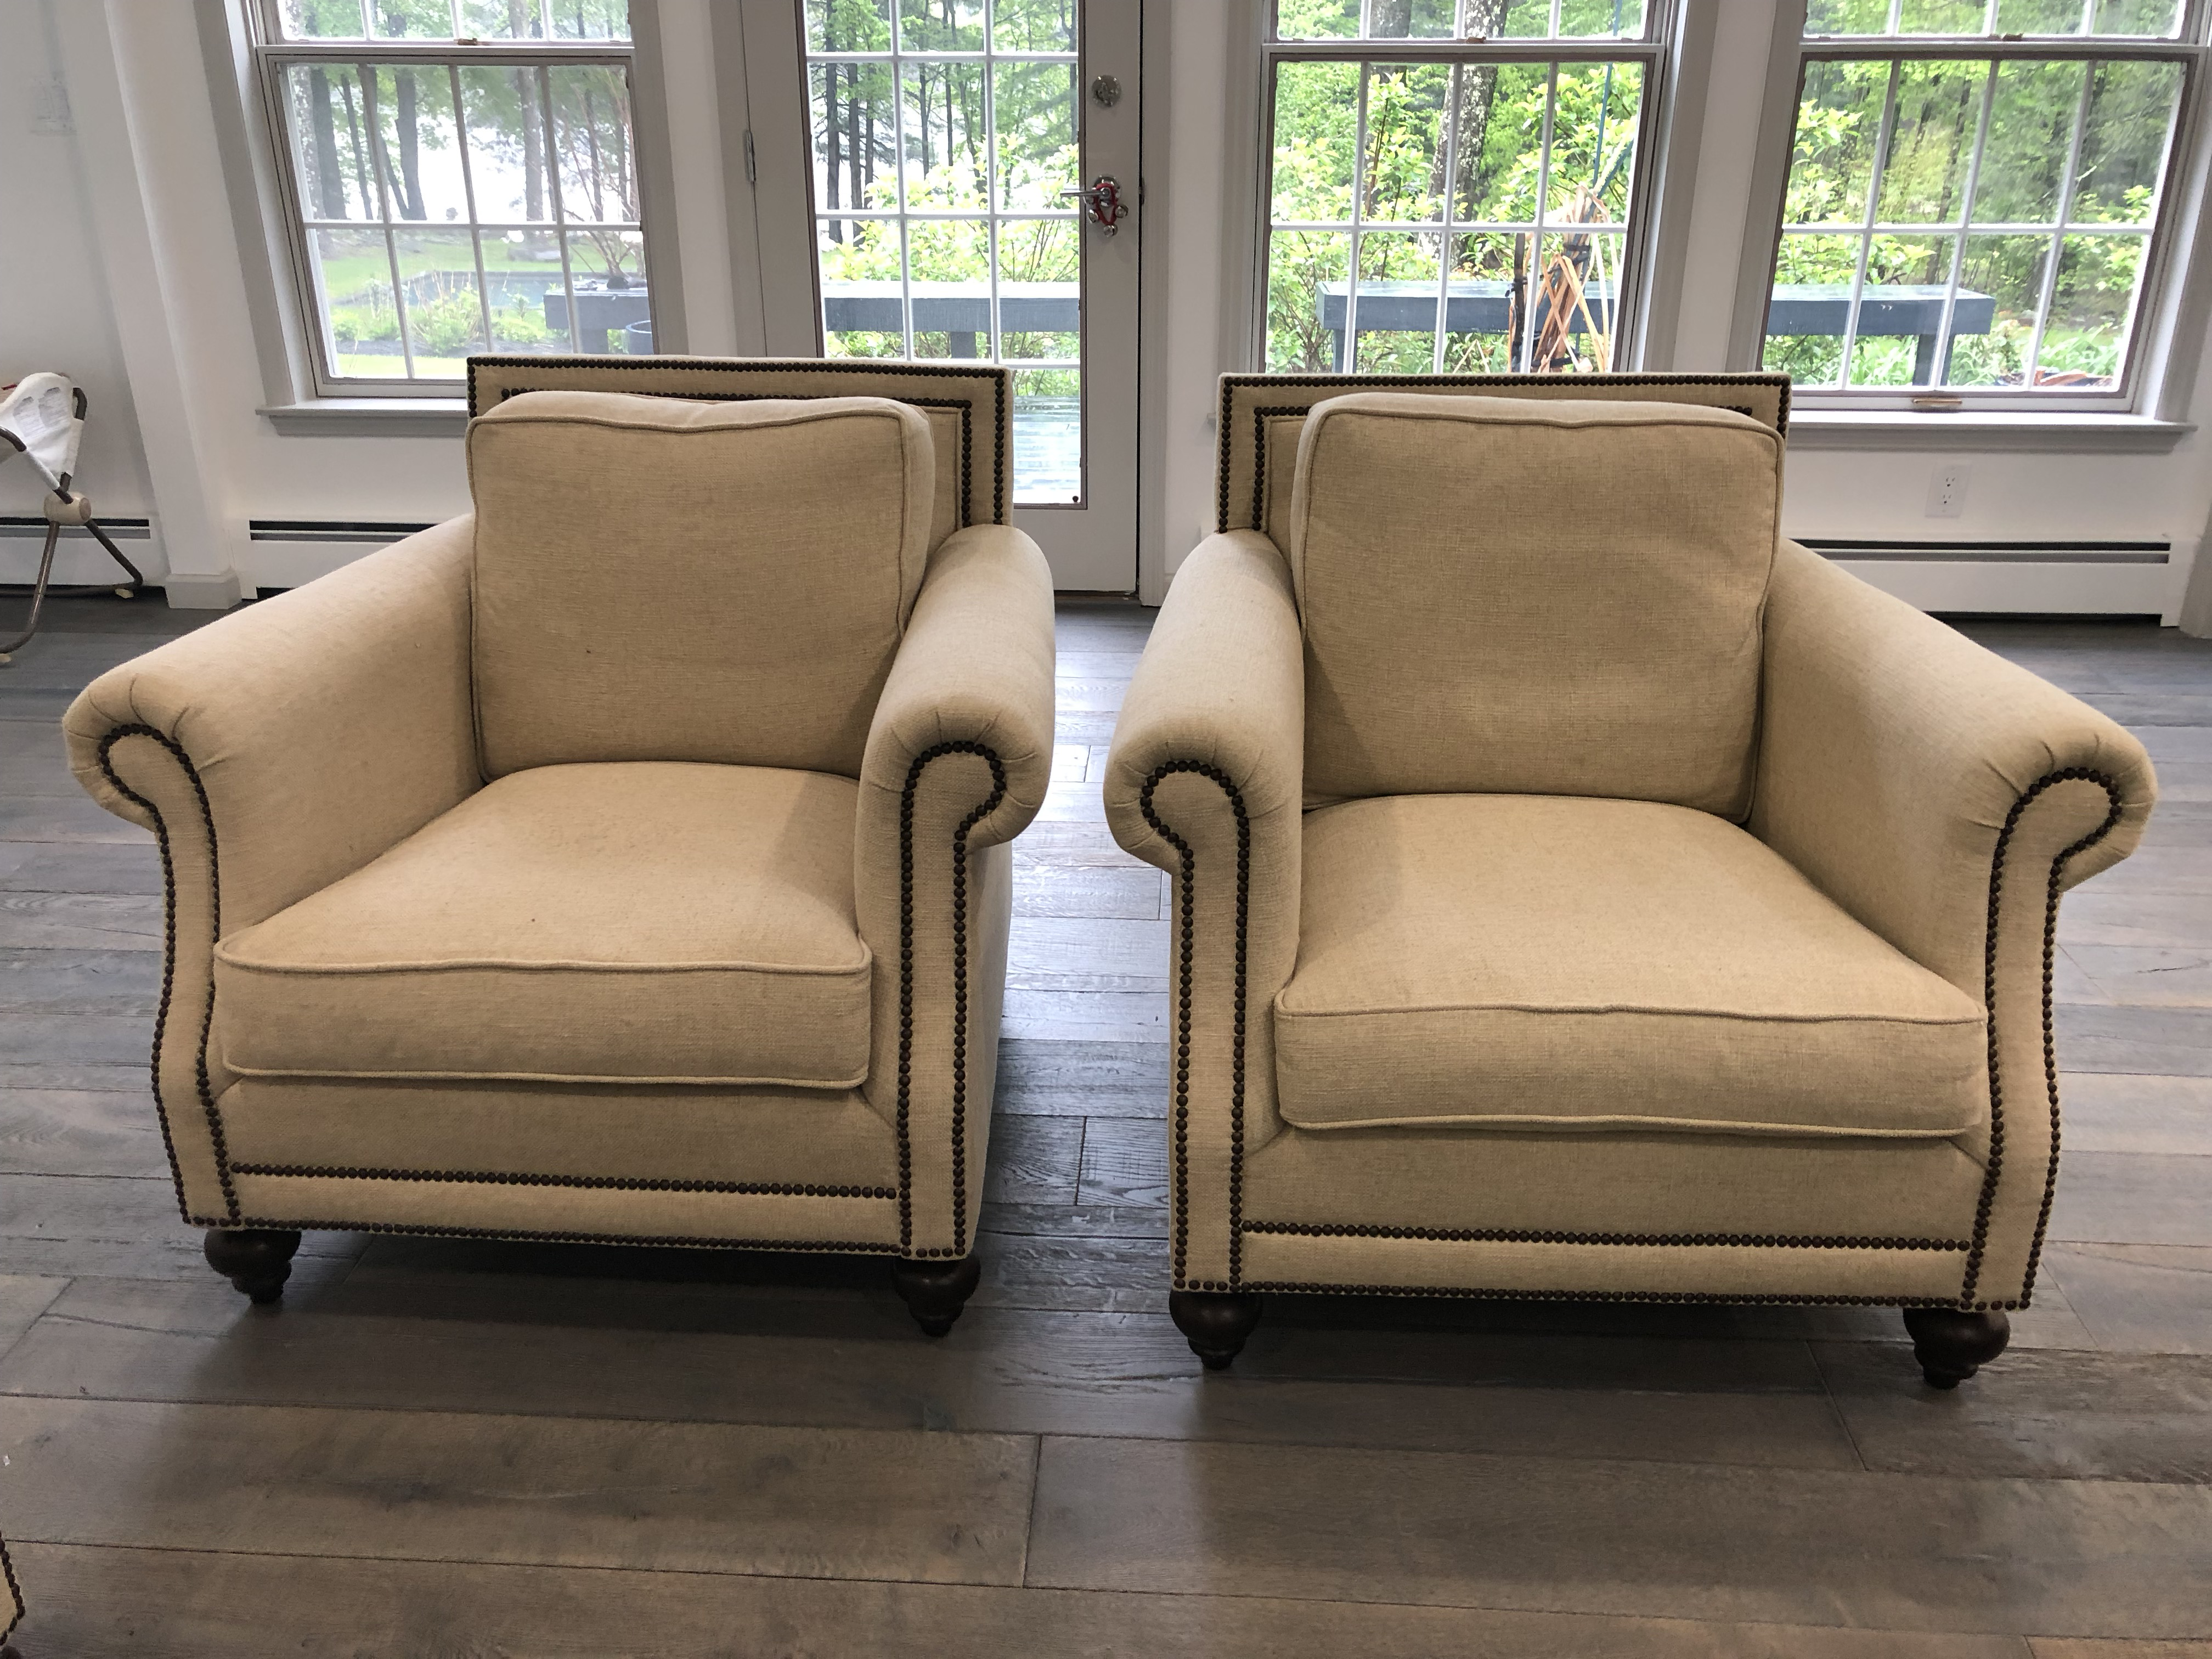 Traditional Safavieh Brae Bernhardt Sofa And Armchairs   3 Pc. Set For Sale    Image